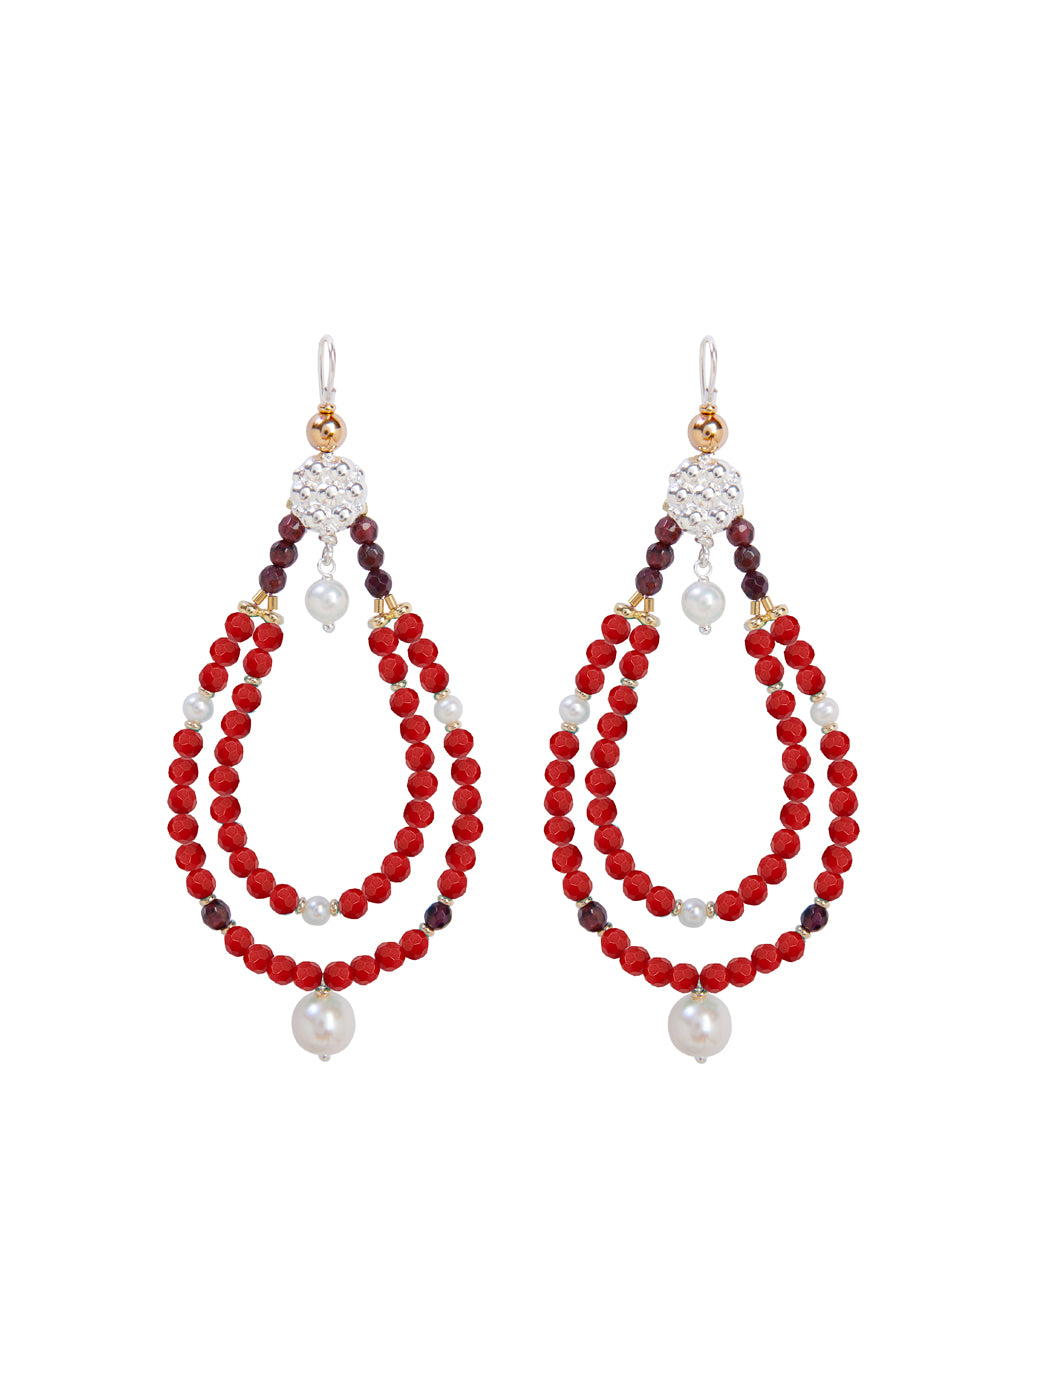 Fiorina Jewellery Rahini Earrings Red Coral